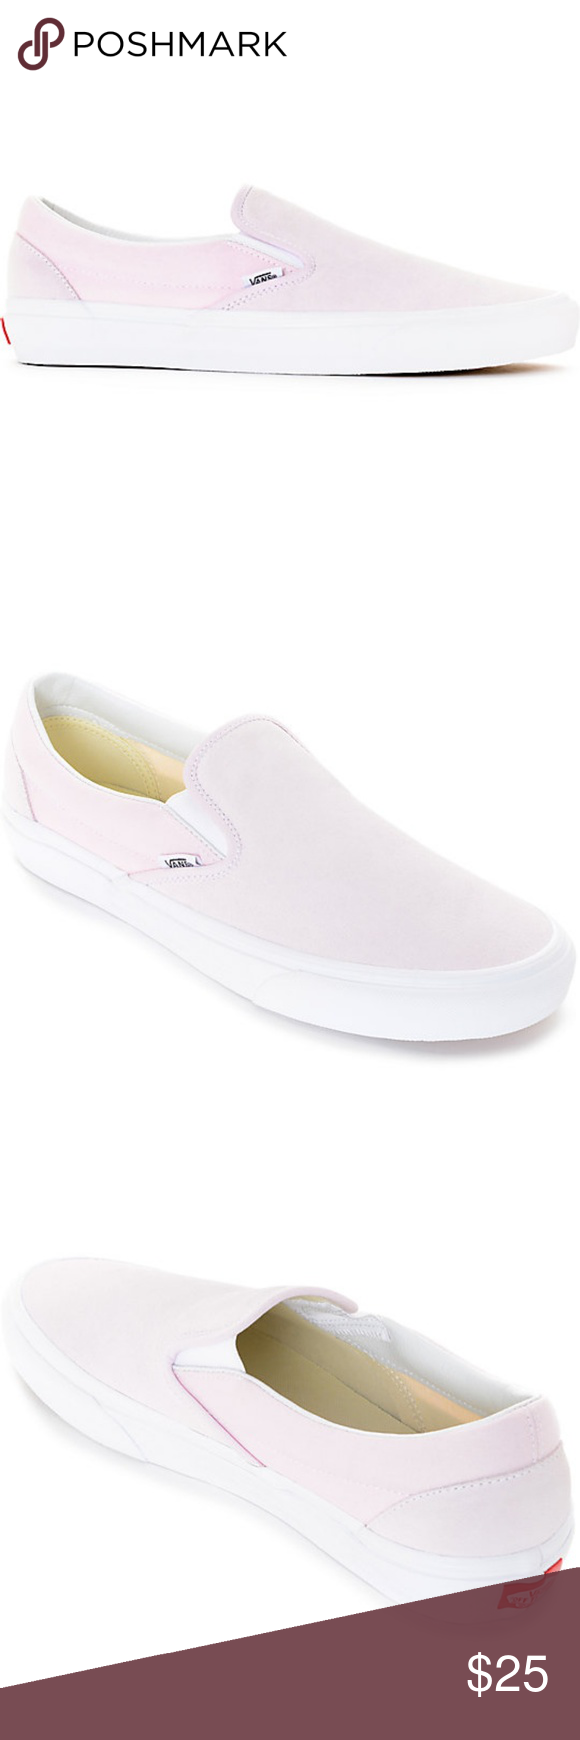 0ff02a2e71 Vans Slip-On Pastel Pink Skate Shoes Men s Sz 8.5  Small stain on left